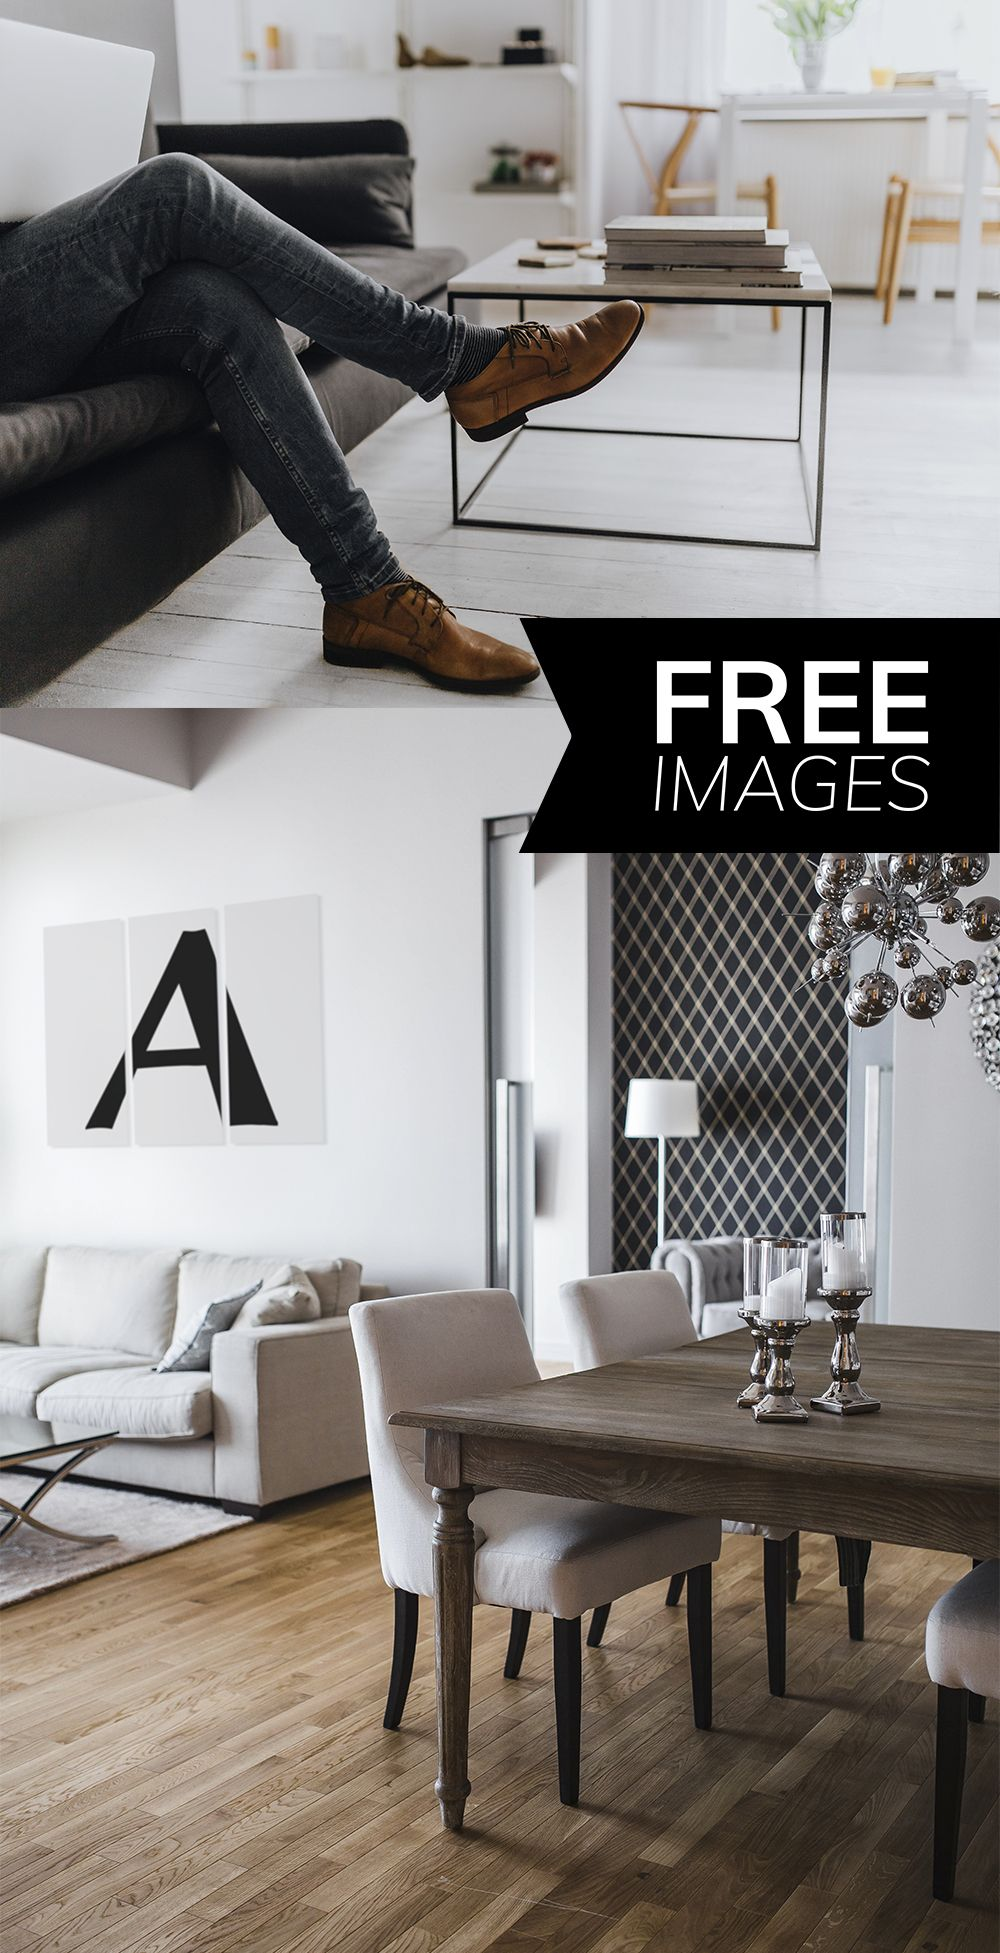 Download These Free Images Of Interior At Rawpixel Com